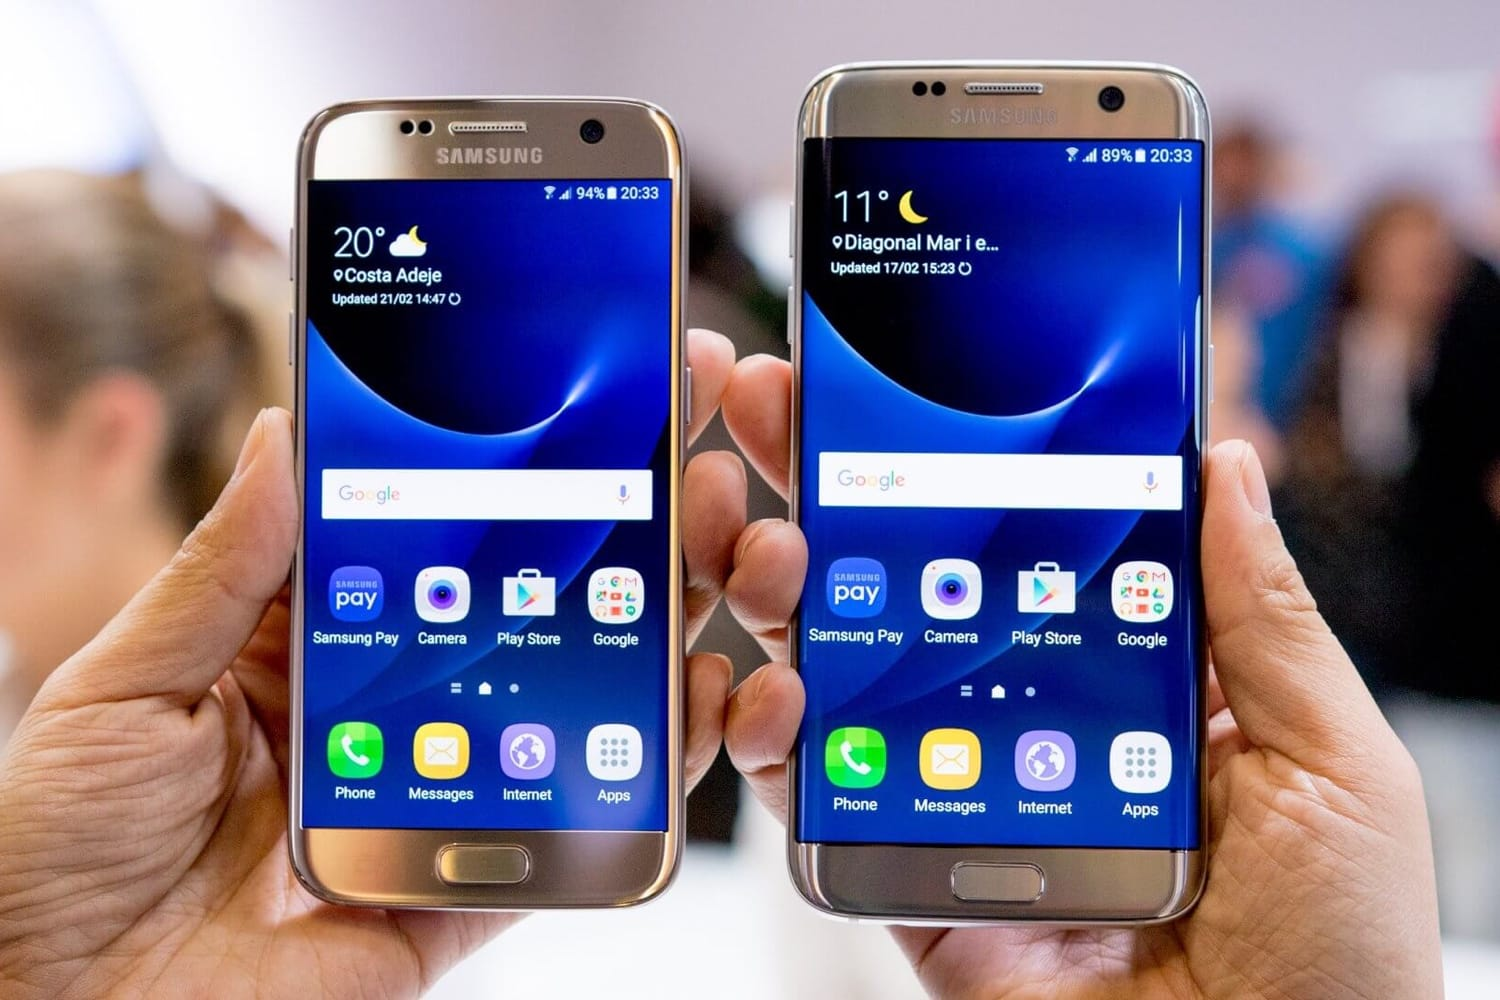 Samsung was lasting fortunate owners of the Galaxy S7 and Galaxy S7